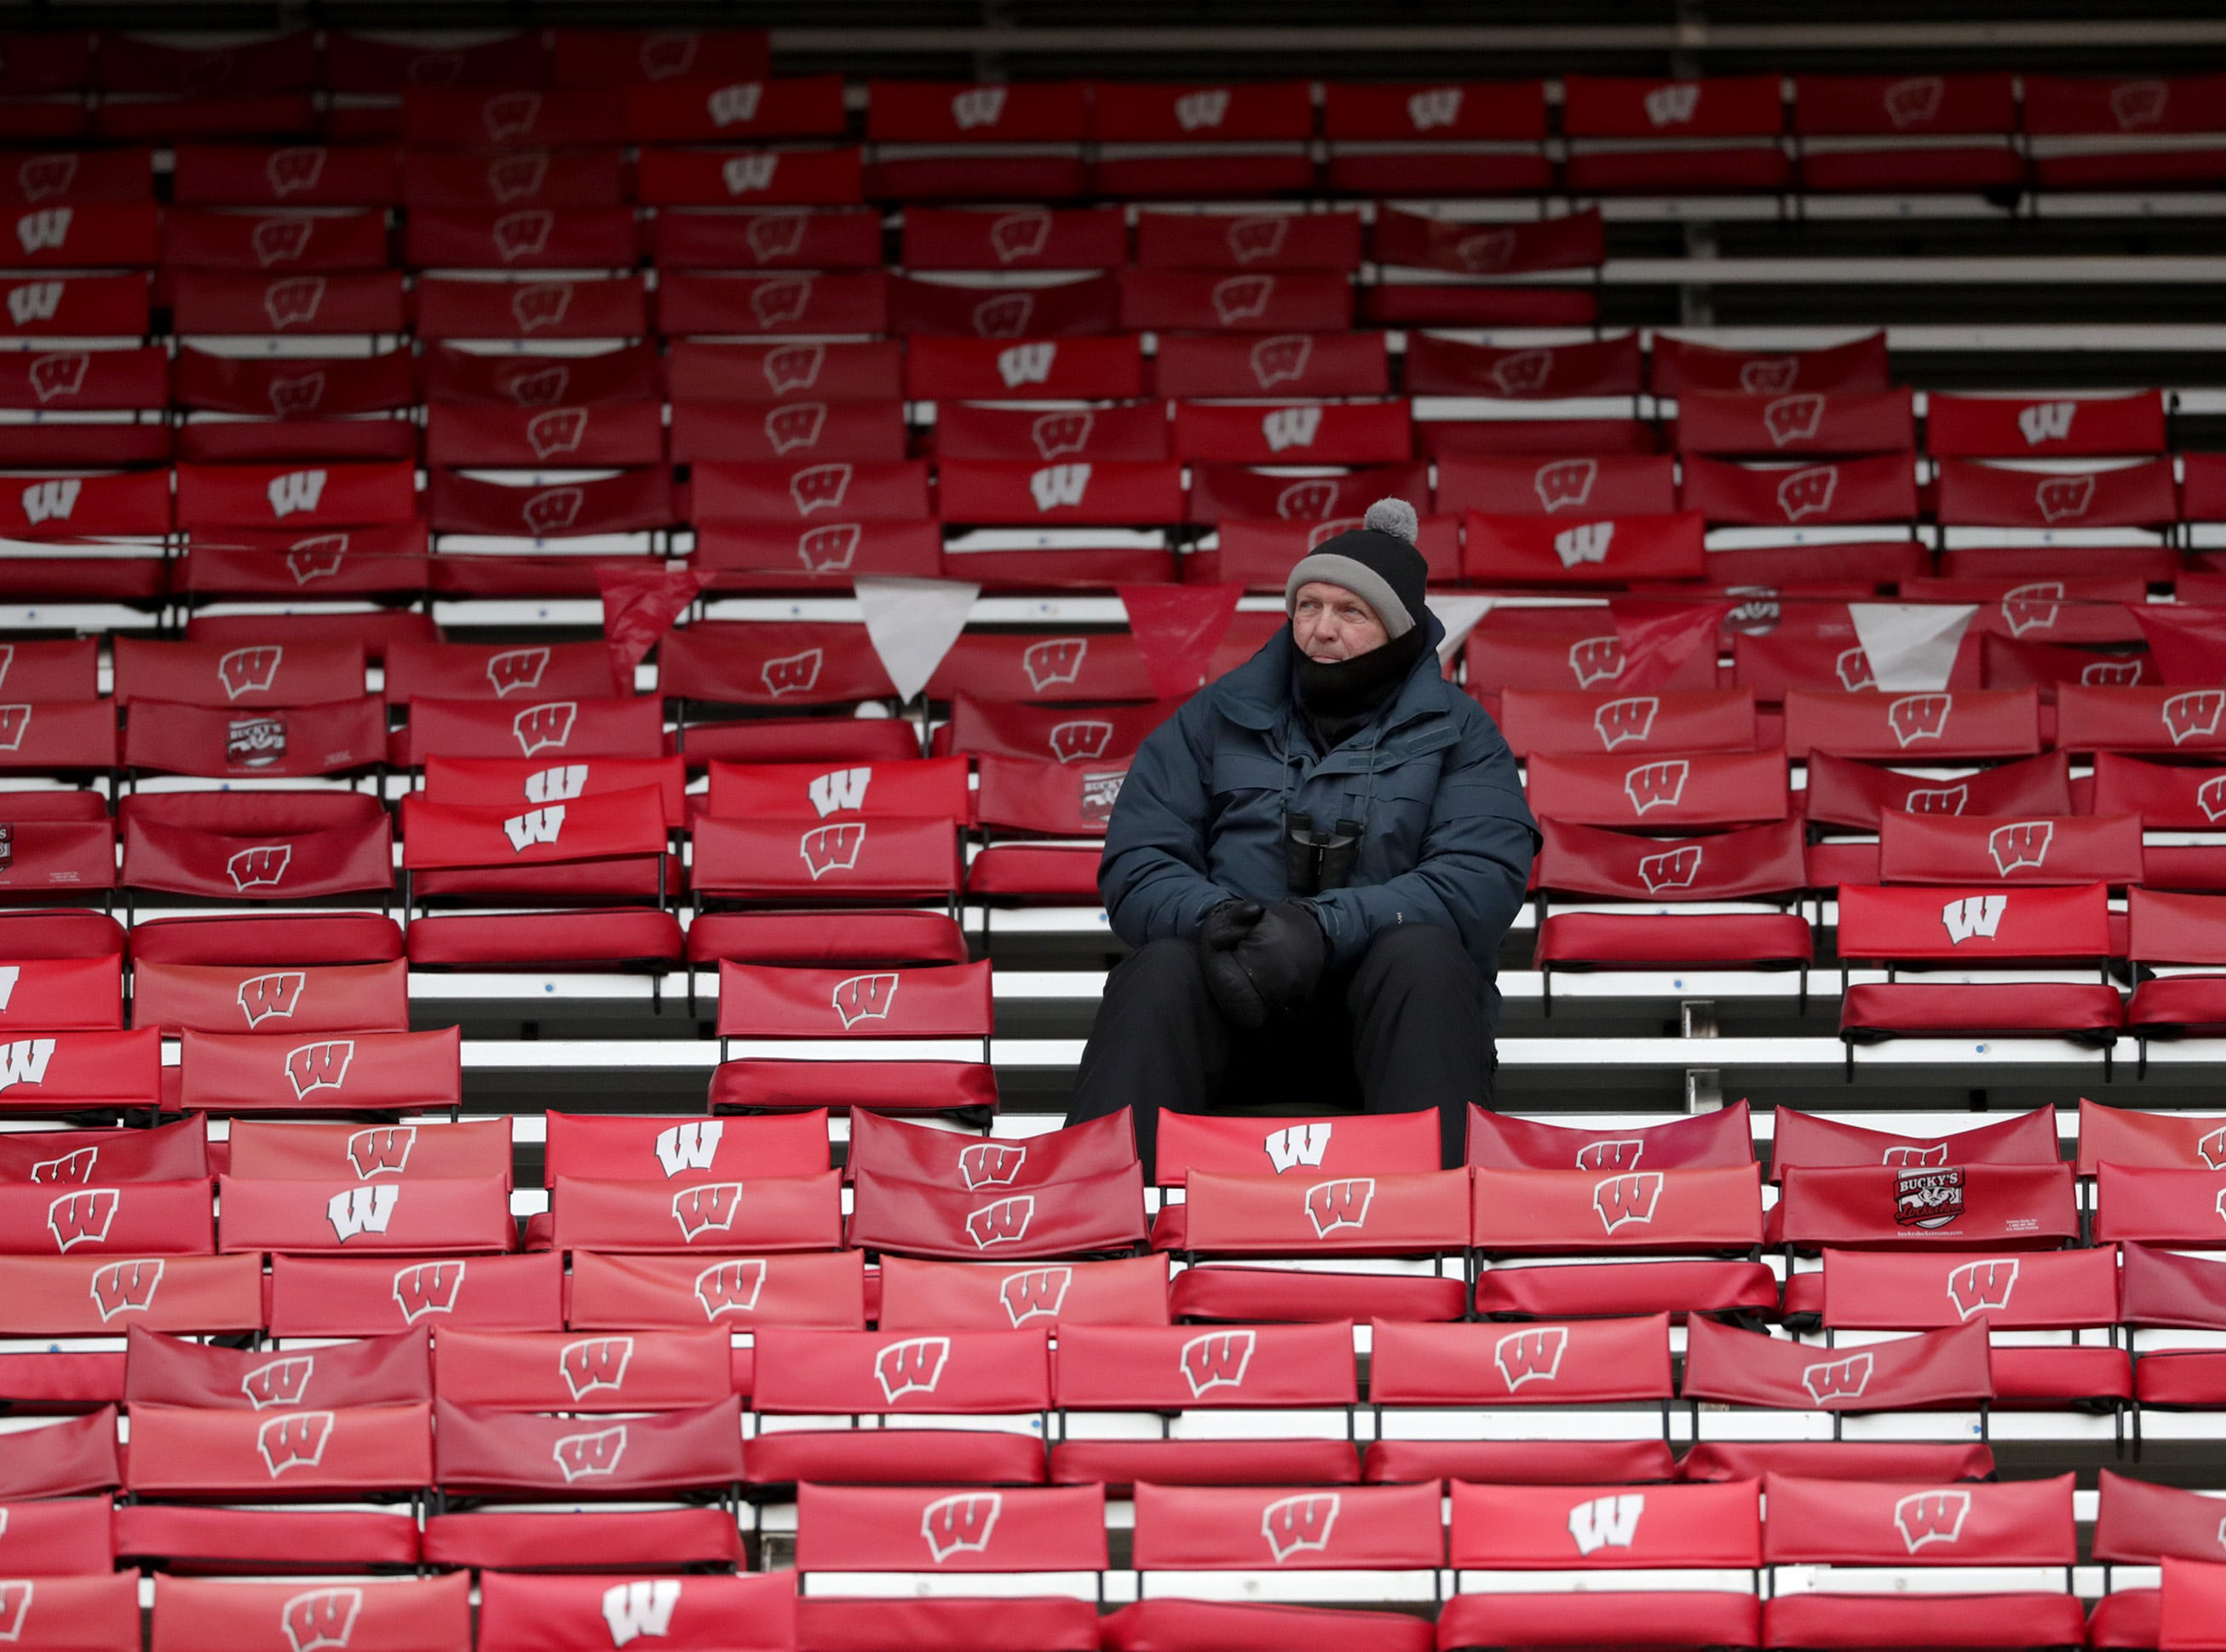 A lone fan watches West De Pere High School against Catholic Memorial High School during the WIAA Division  3 state championship football game on Friday, November 16, 2018, at Camp Randall in Madison, Wis. Wm. Glasheen/USA TODAY NETWORK-Wisconsin.